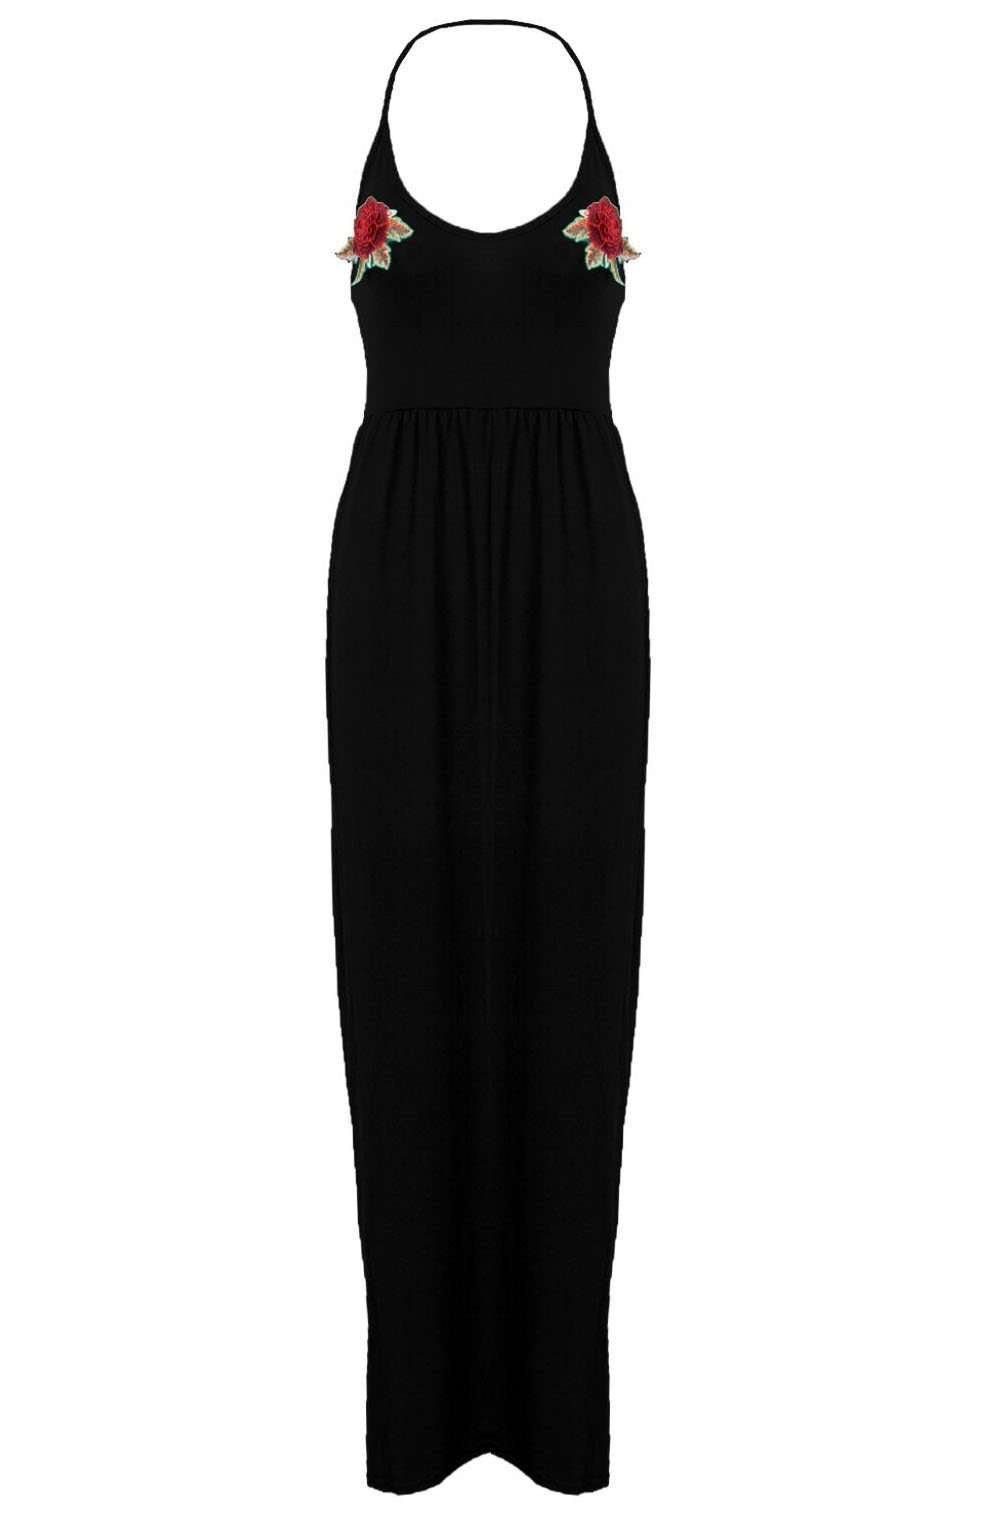 Martha Halter Neck Floral Embroidered Maxi Dress - bejealous-com